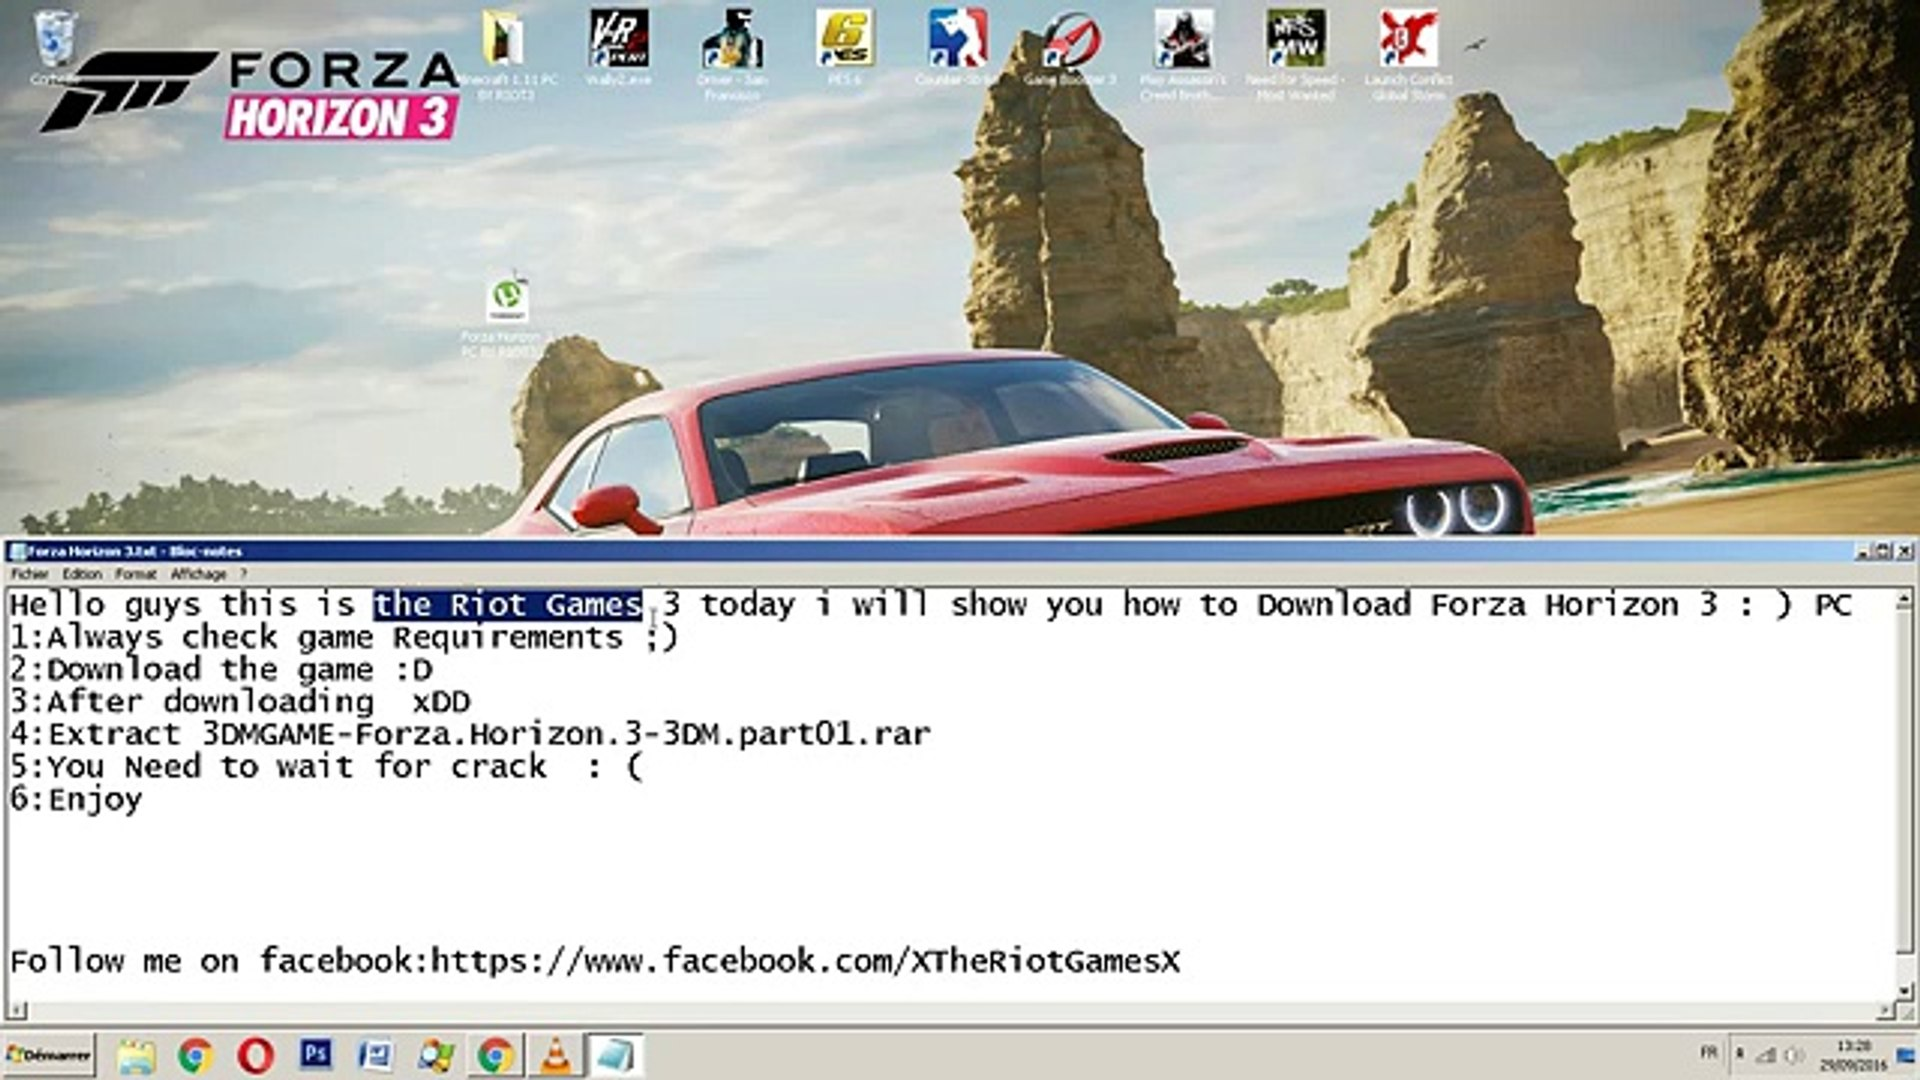 How To Download Forza Horizon 3+Crack PC For FREE